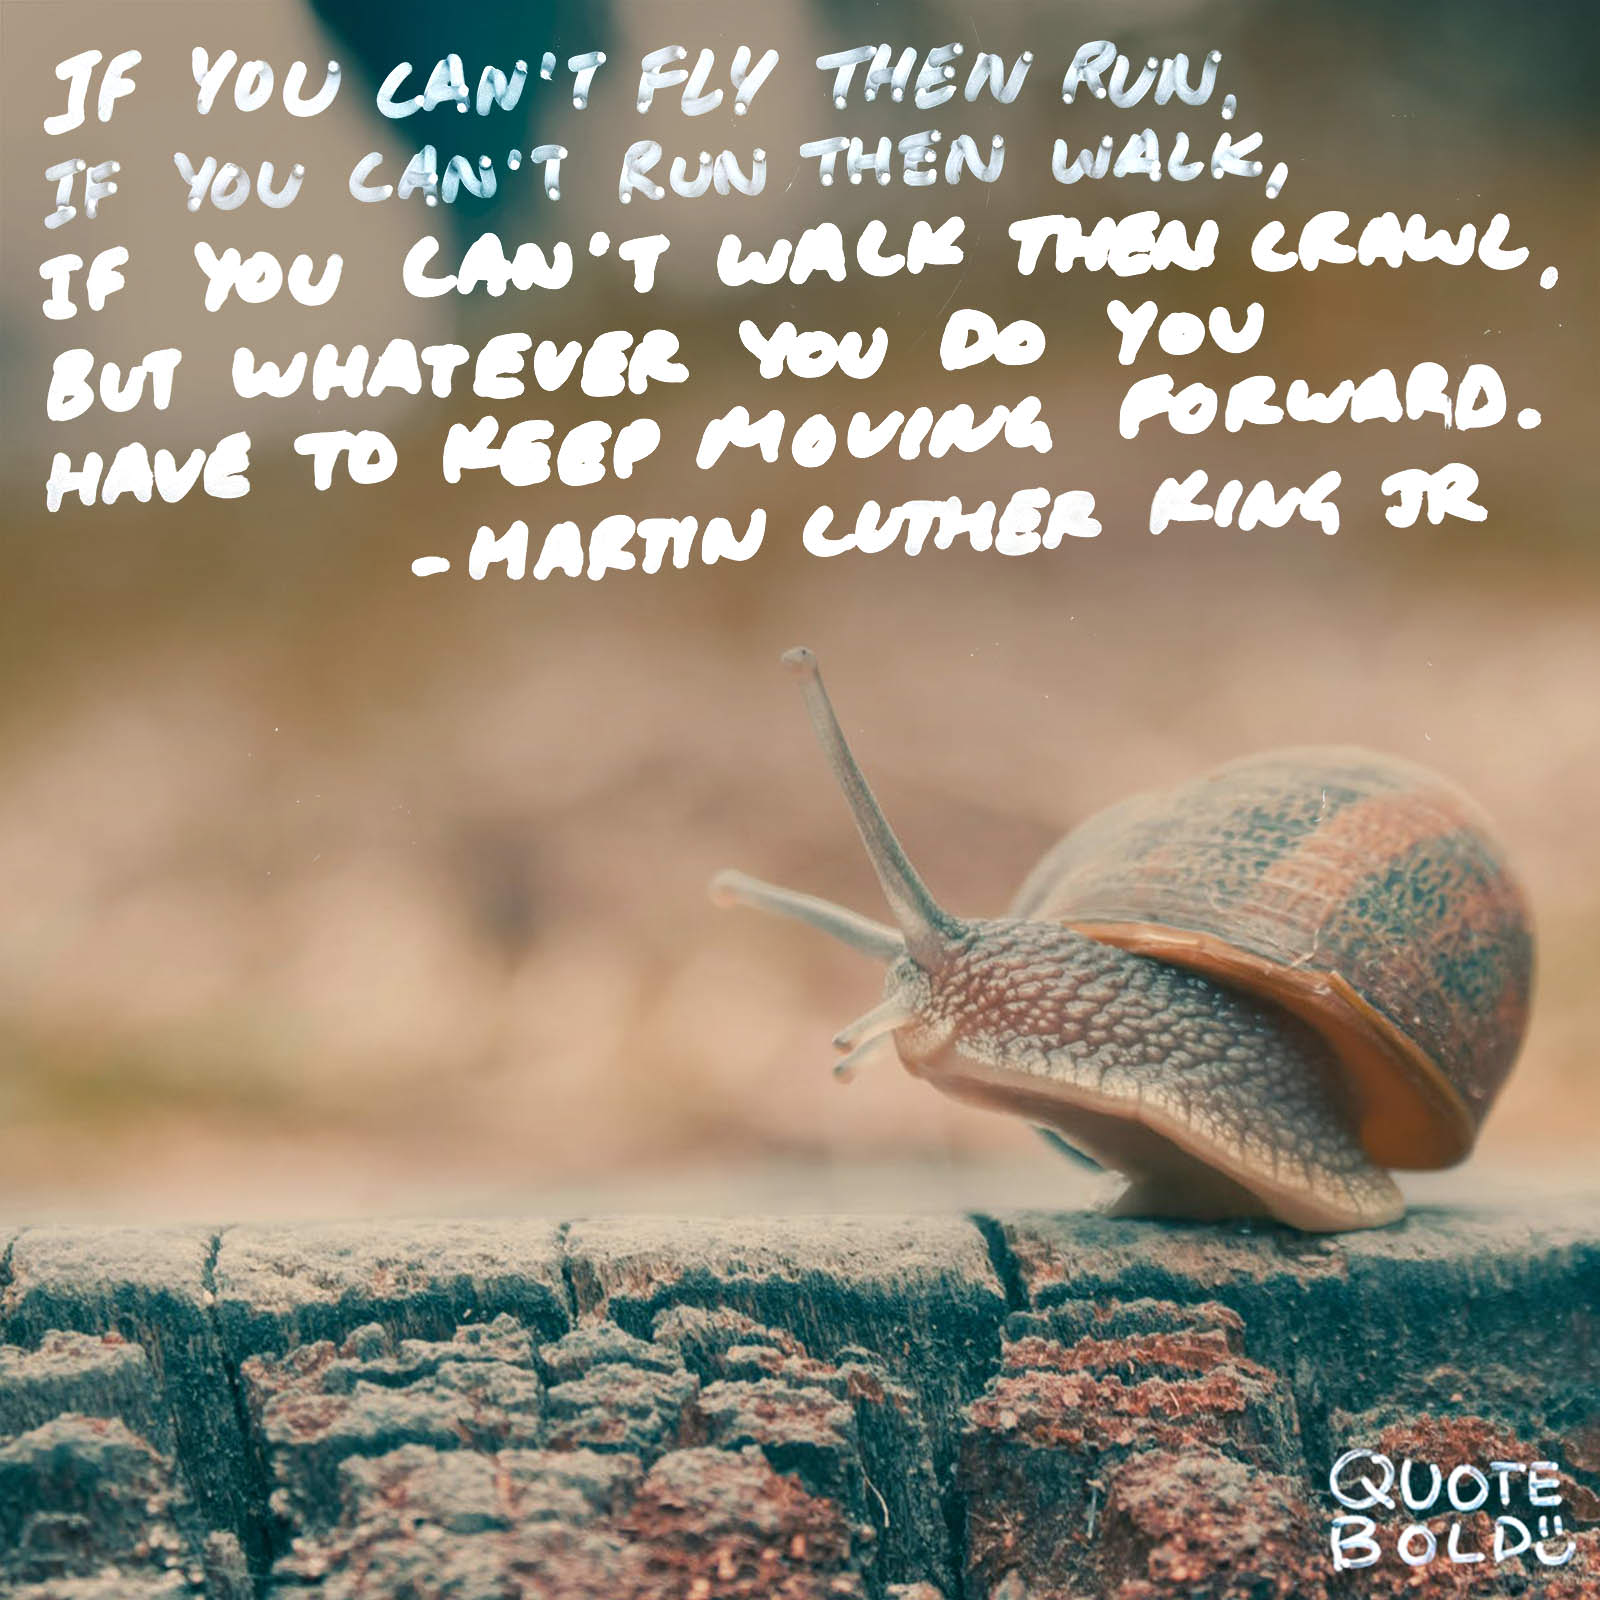 """If you can't fly then run, if you can't run then walk, if you can't walk then crawl, but whatever you do you have to keep moving forward."" – Martin Luther King, Jr. [1600×1600][OC]"